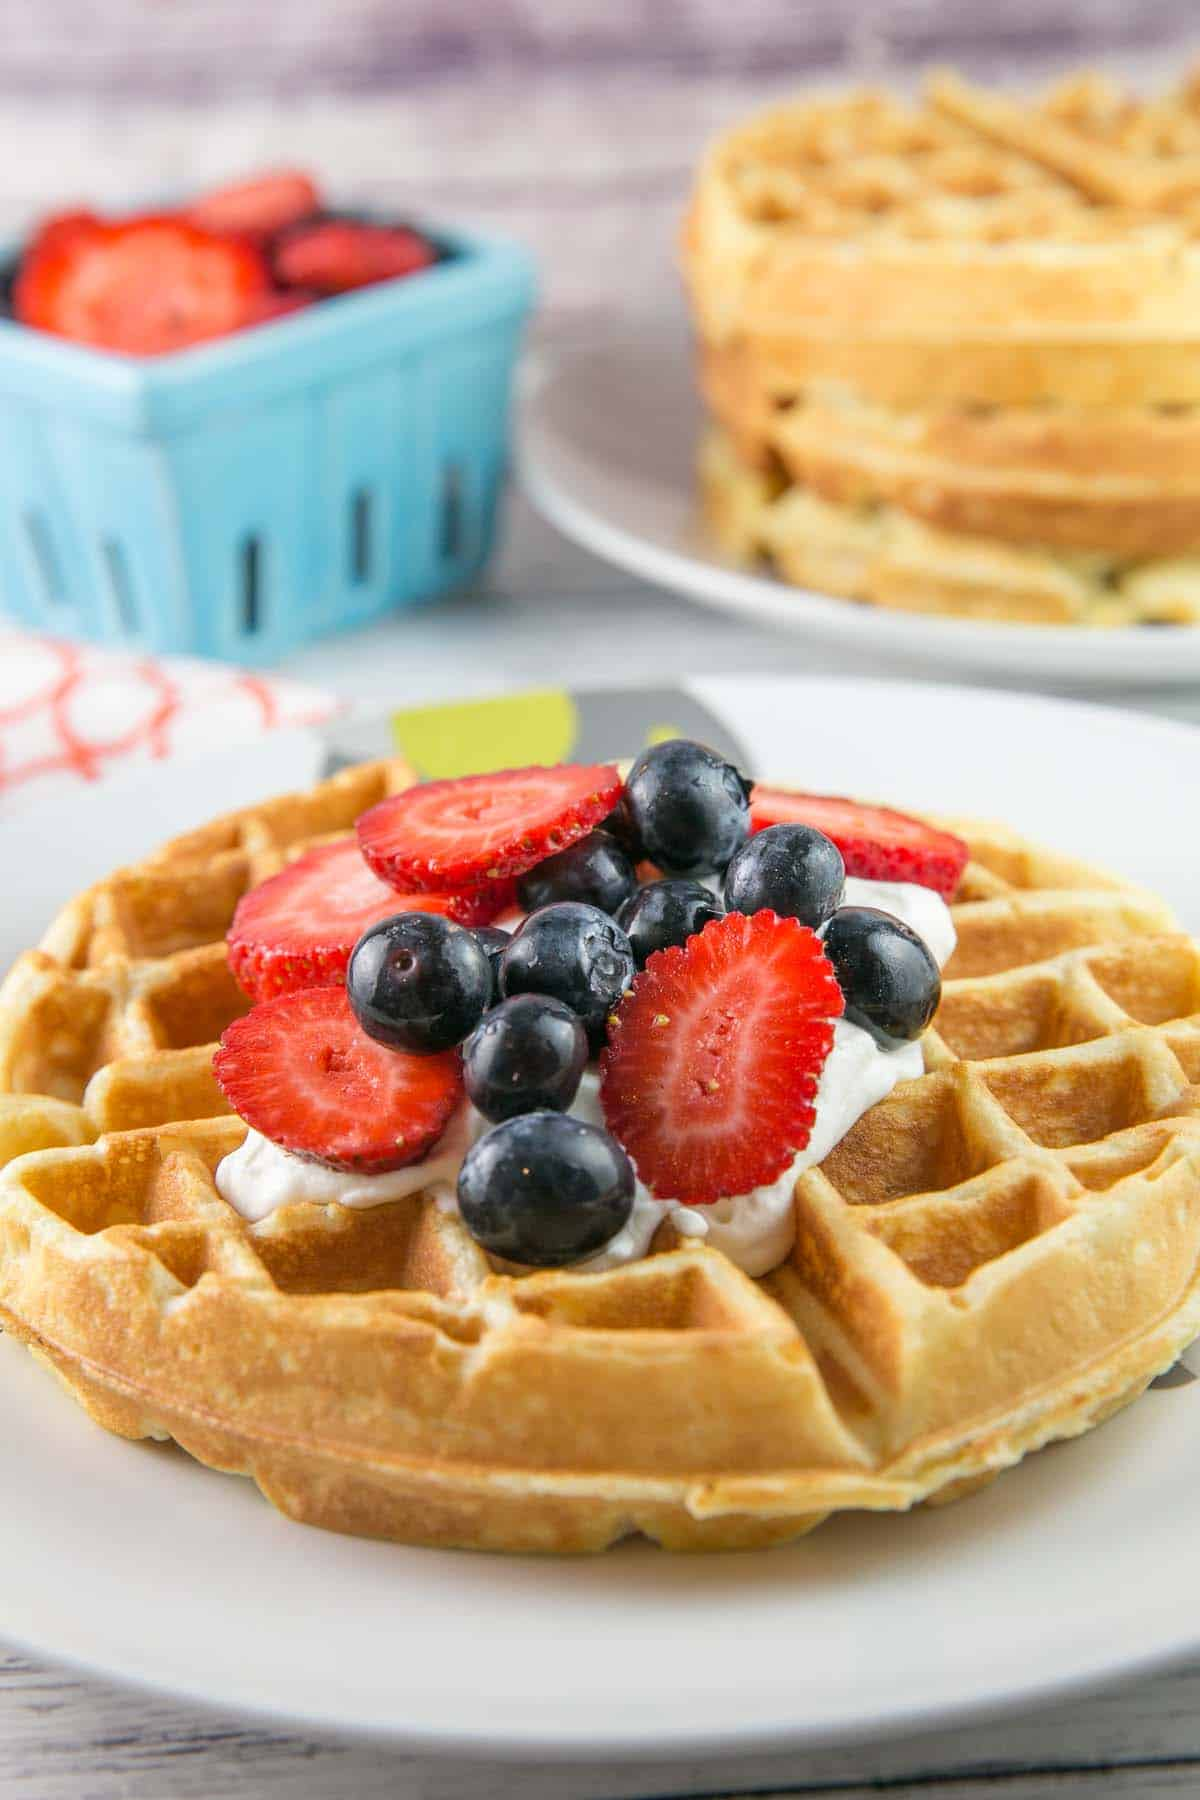 Belgian Waffles: Be a brunch superstar with these light and fluffy classic Belgian waffles. No matter what topping you choose, these waffles are sure to be a big hit. {Bunsen Burner Bakery} #waffles #belgianwaffles #breakfast #brunch